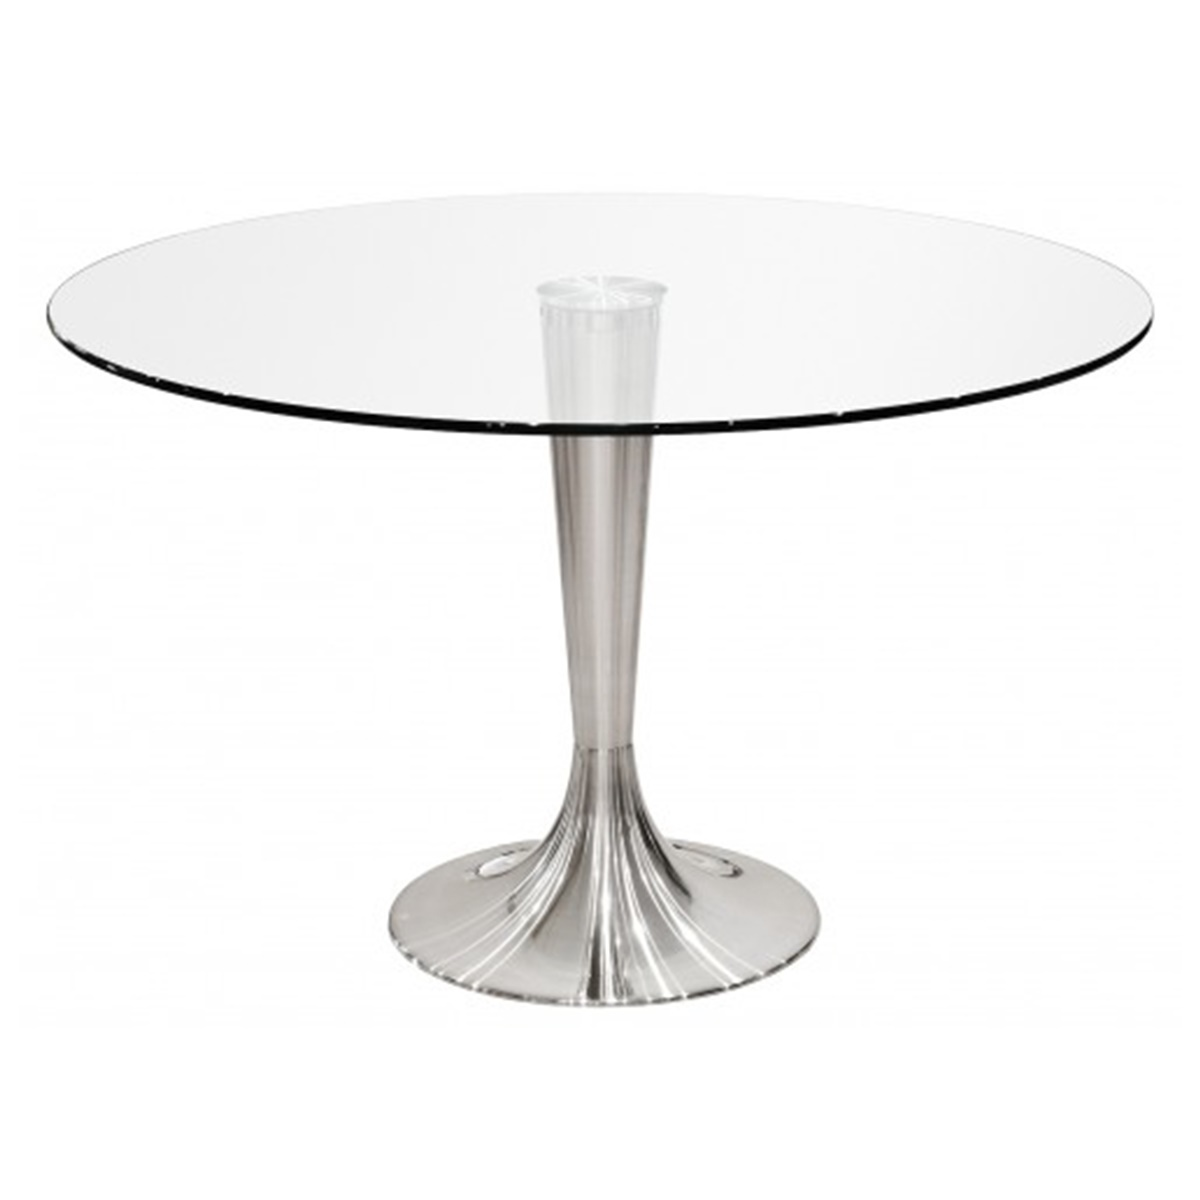 Trixie Round Glass Dining Table